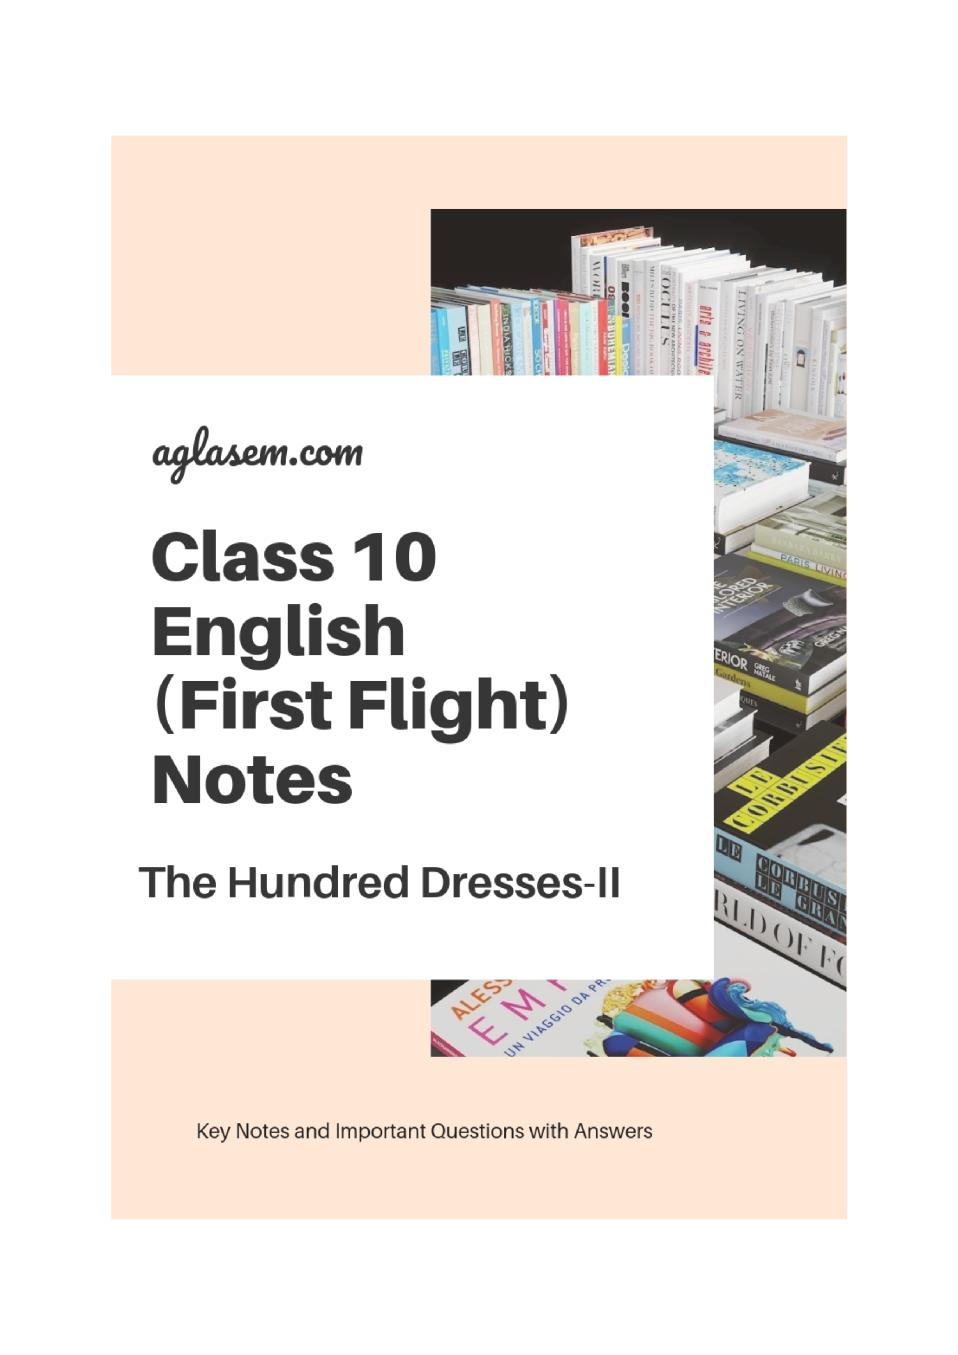 Class 10 English First Flight Notes For The Hundred Dresses-II - Page 1